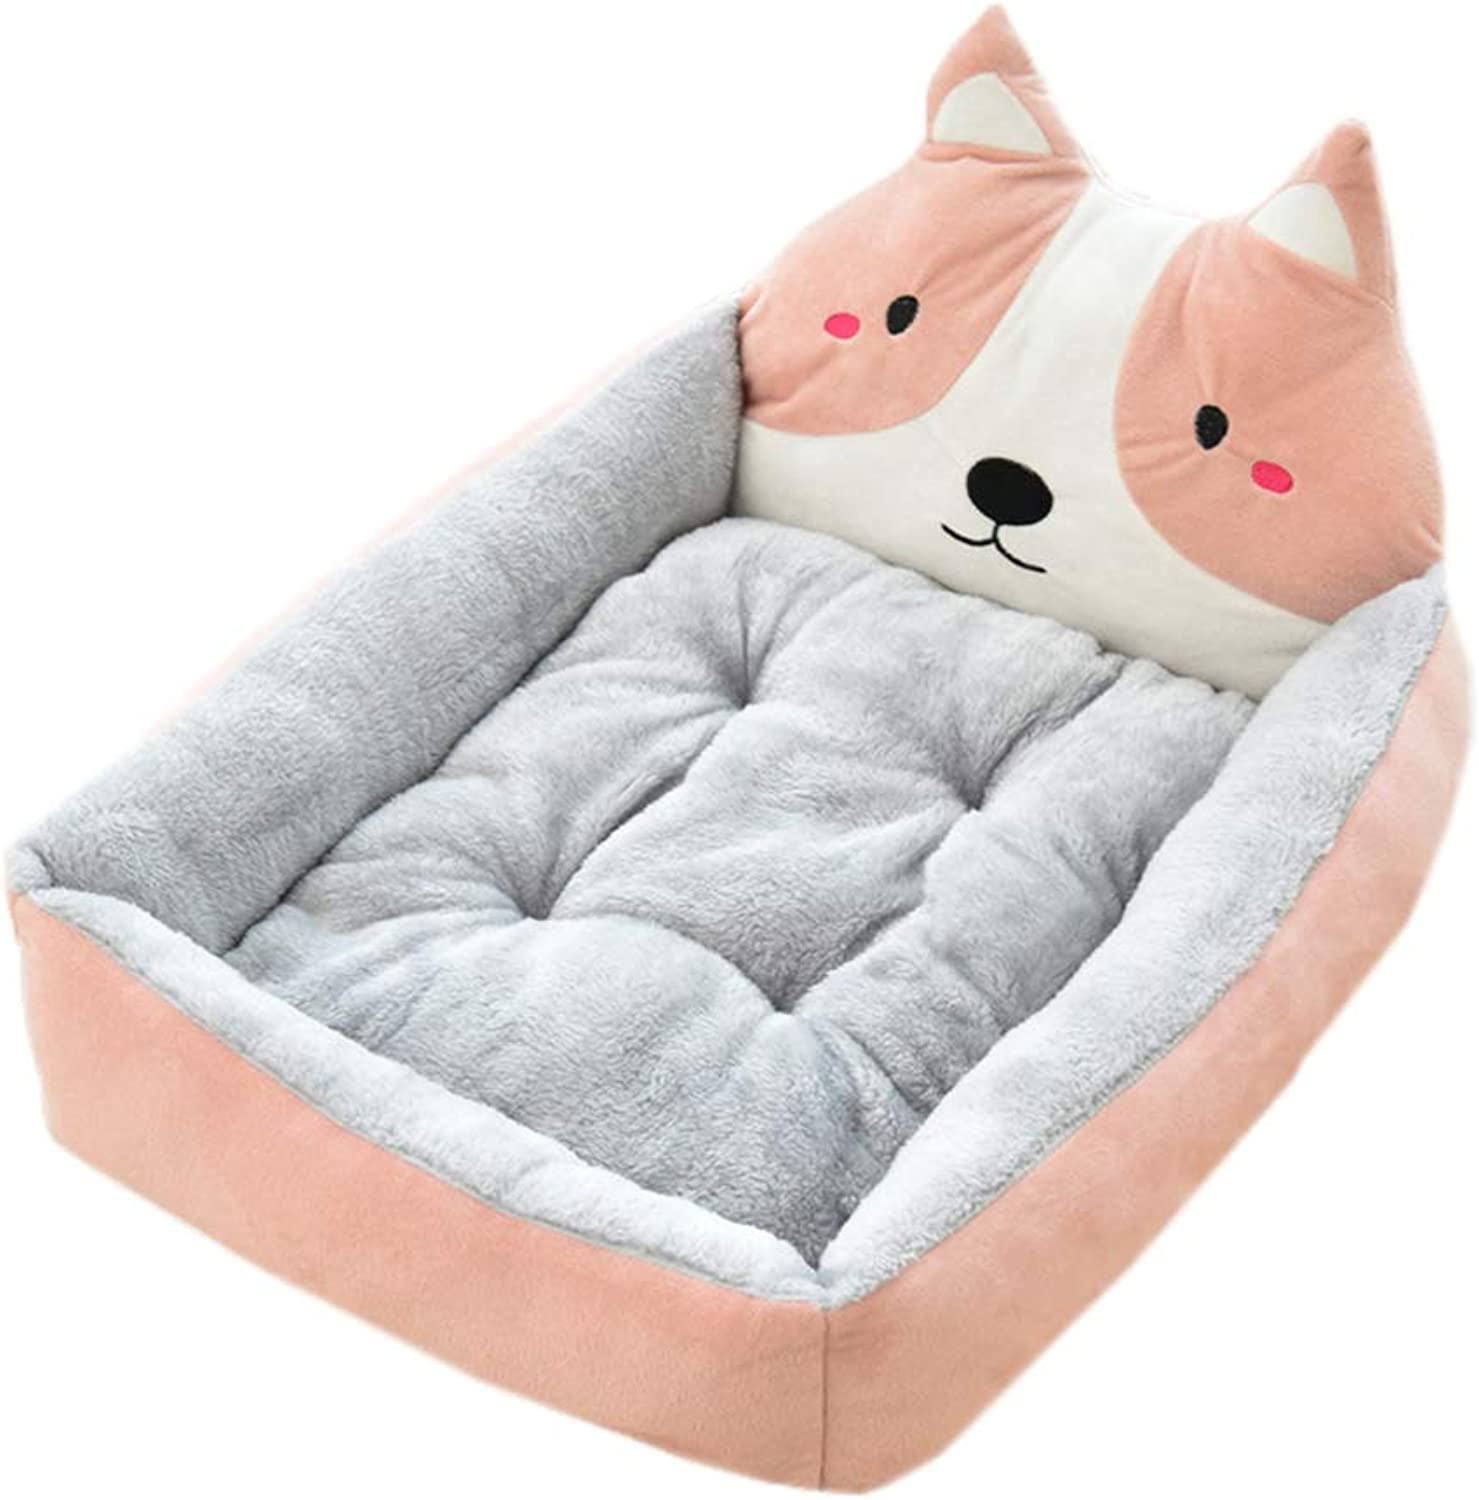 Dog Removable and Washable Mat Bed Winter Cartoon Plush Animals Pet Cushion Small,Medium Size Pet Dogs Warm Bed Cushion (XL, Pink)